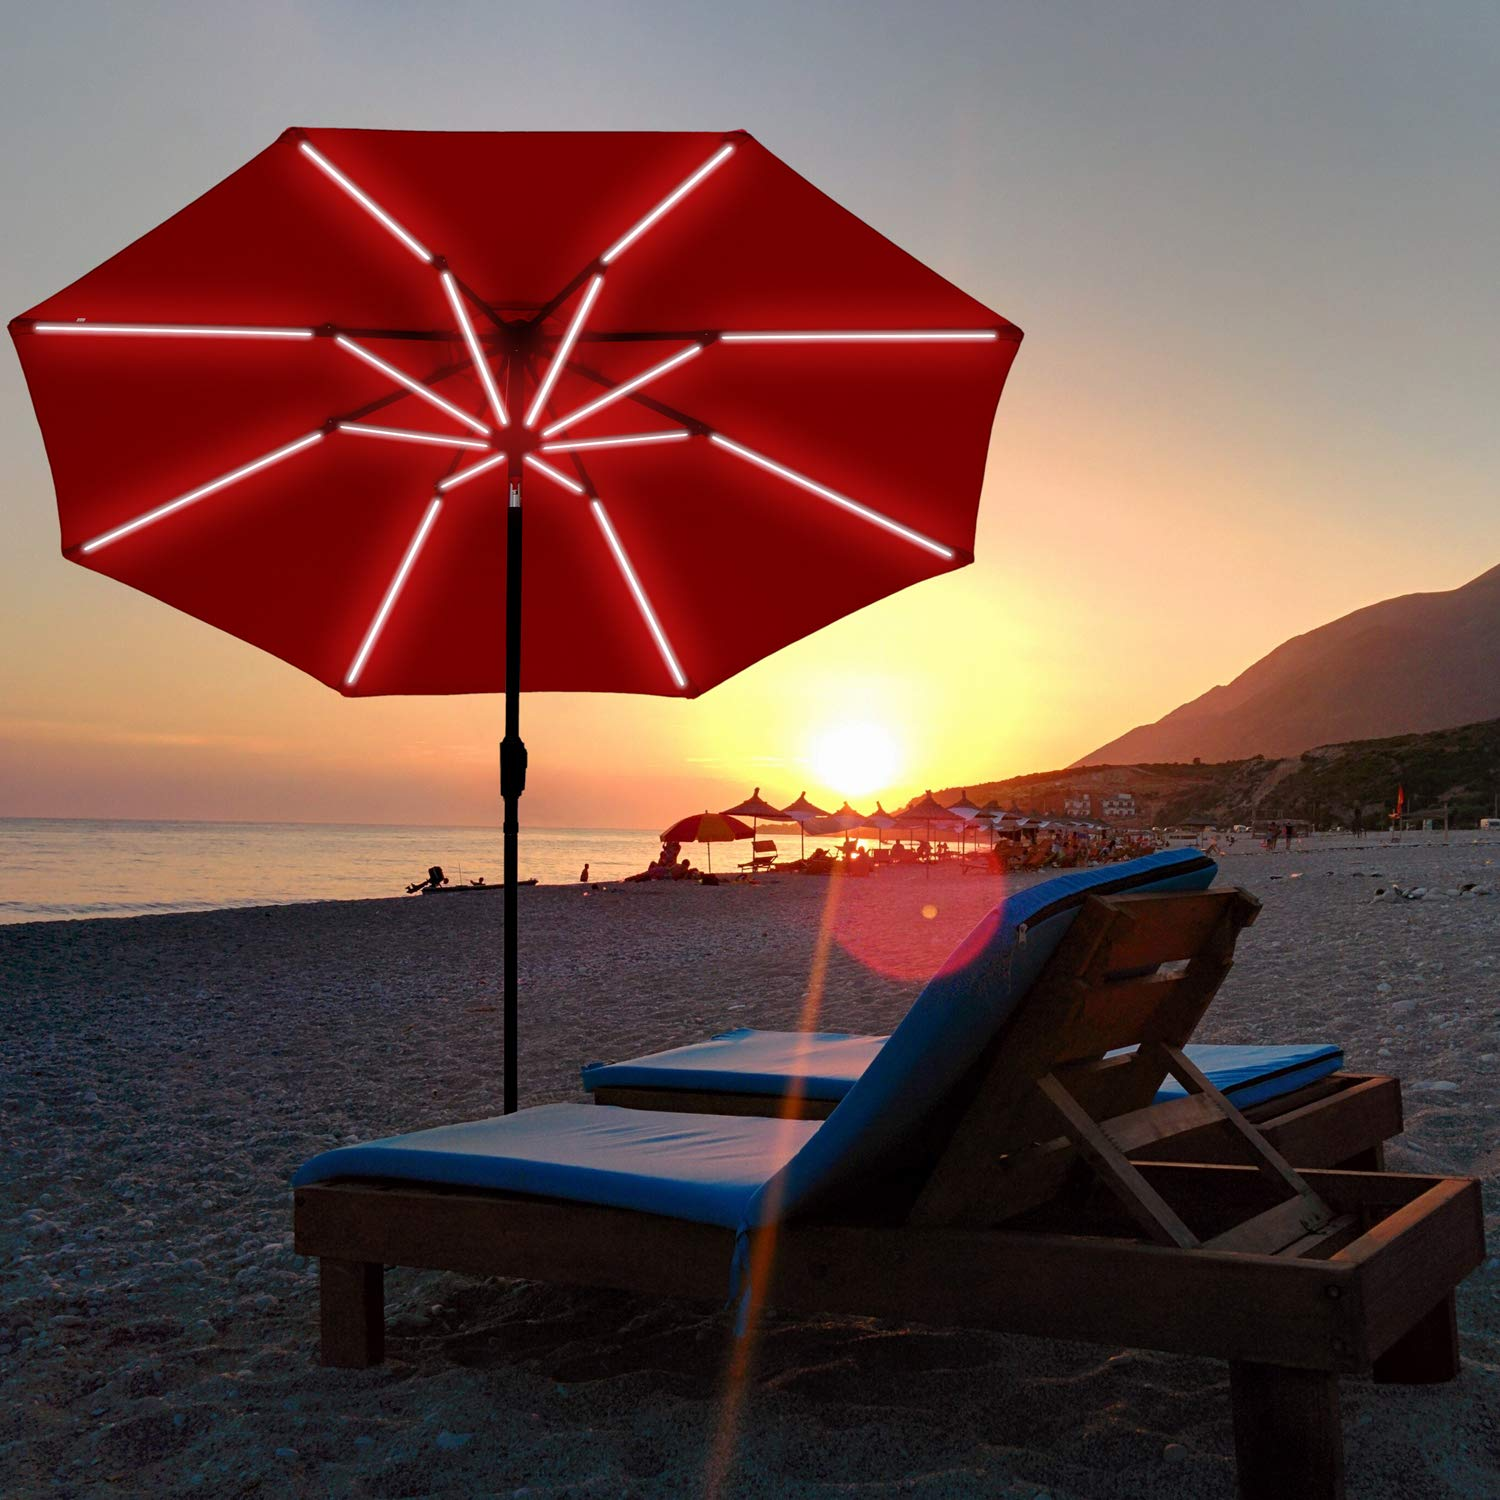 SUNBRANO Deluxe Solar Powered LED Strip Lighted Patio Umbrella, 9ft Market Table Umbrella w Tilt and Crank, 8 Ribs, Red